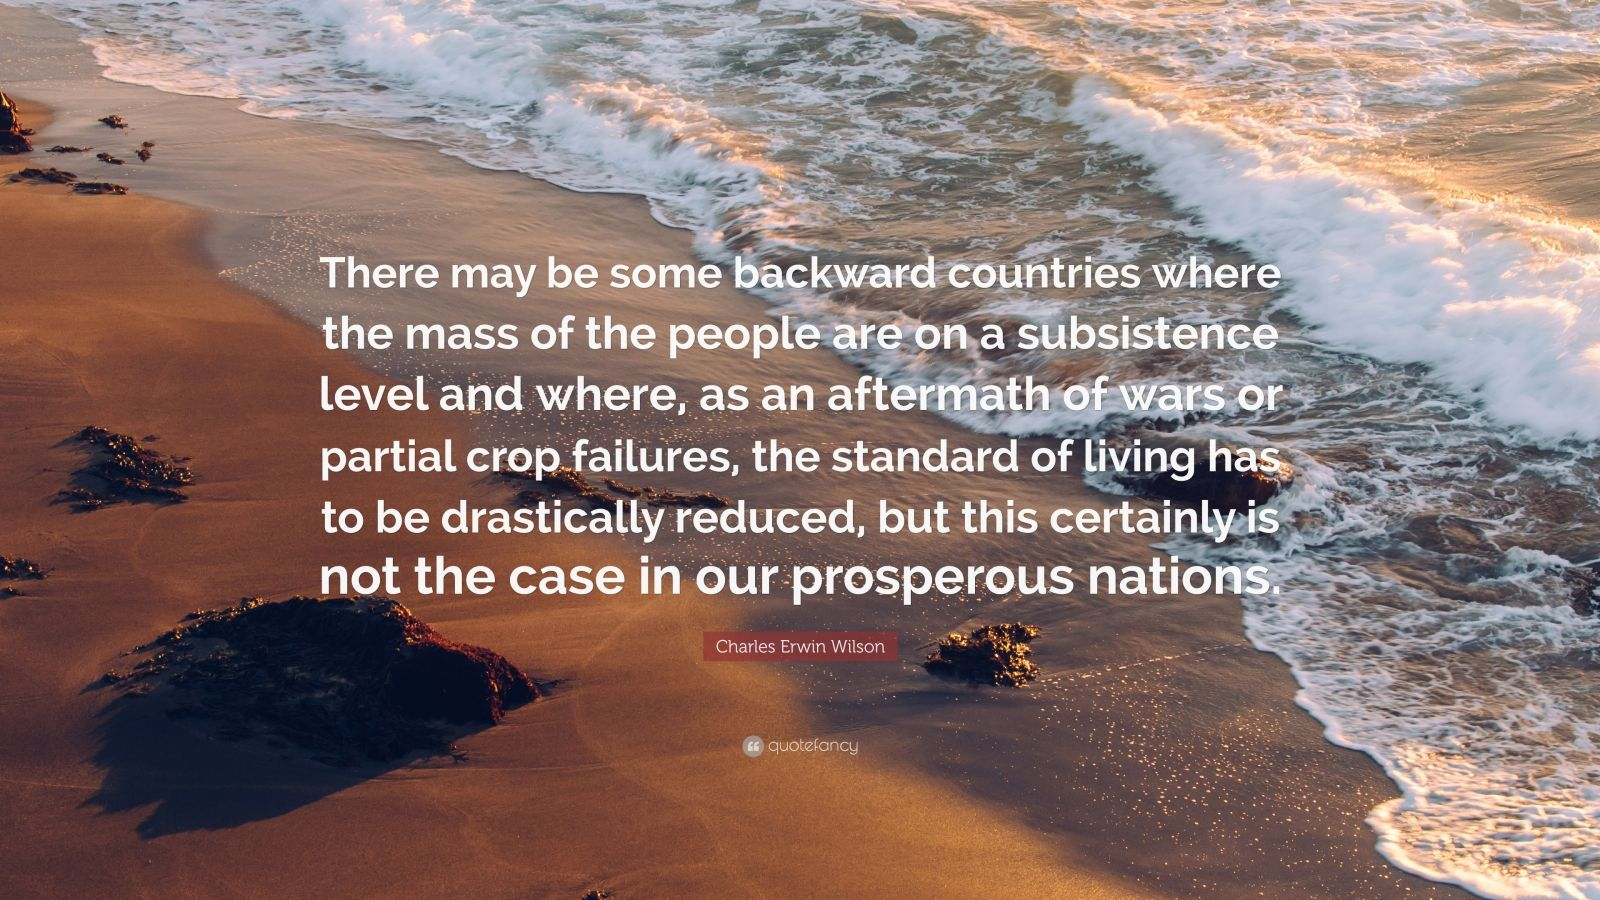 "Charles Erwin Wilson Quote: ""There may be some backward countries where the mass of the people are on a subsistence level and where, as an aftermath of wars or partial crop failures, the standard of living has to be drastically reduced, but this certainly is not the case in our prosperous nations."""